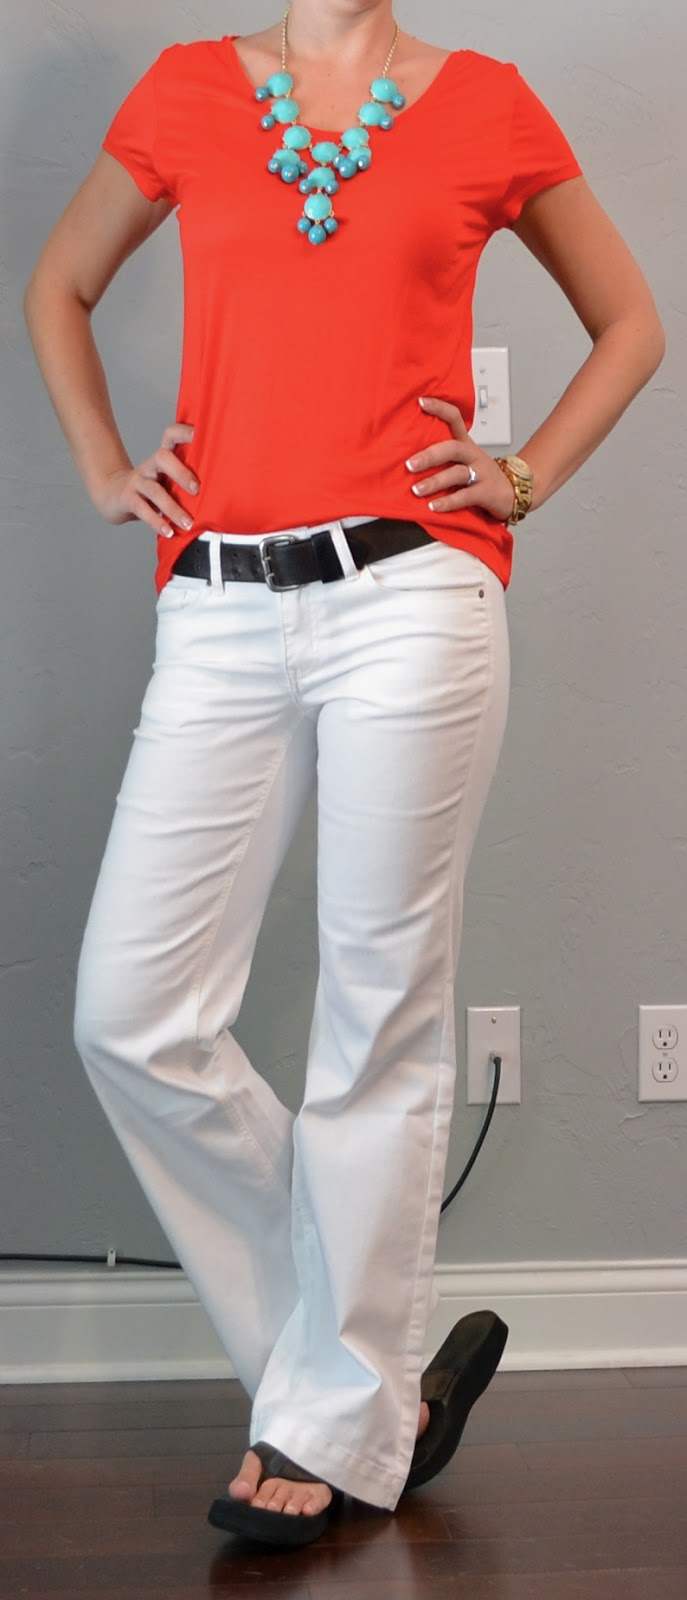 Outfit Post Red T-Shirt, White Jeans, Teal Necklace-1195